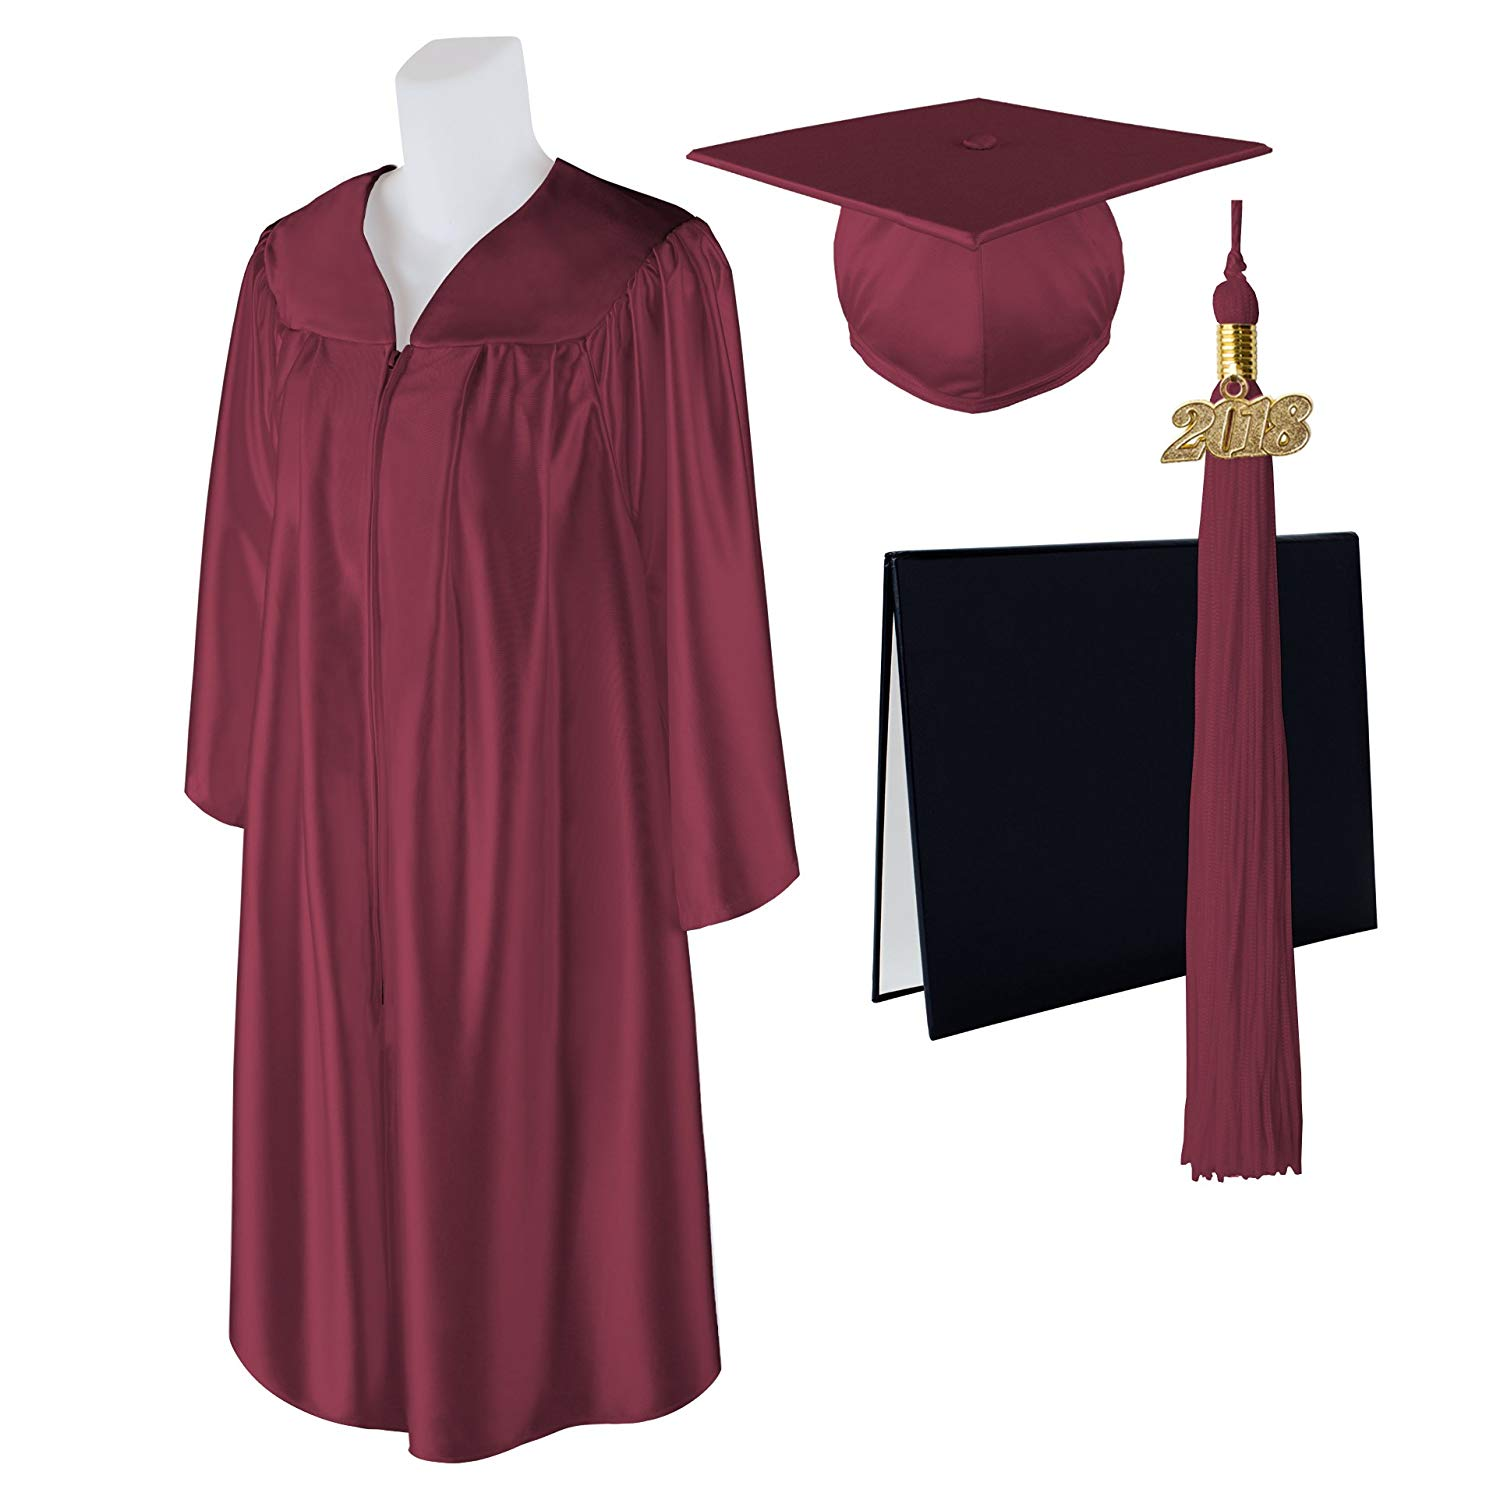 Get Quotations Standard Shiny Graduation Cap Gown And Diploma With Matching 2018 Tel Size 6